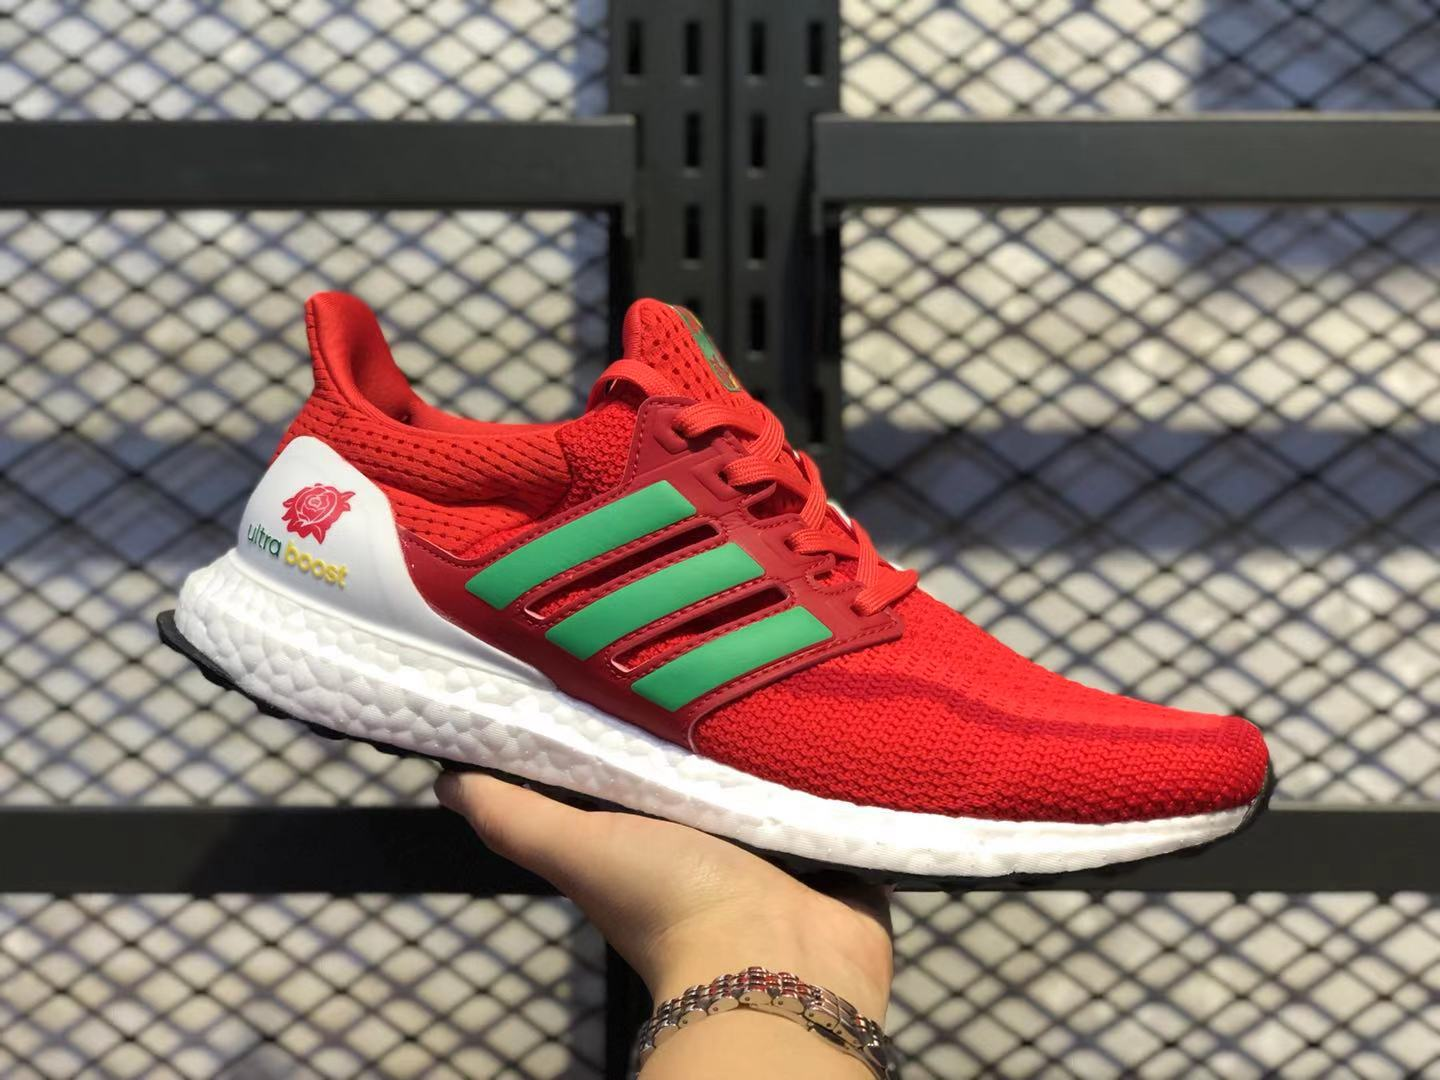 Adidas Ultra Boost University Red/White-Green Sneakers Super Deals